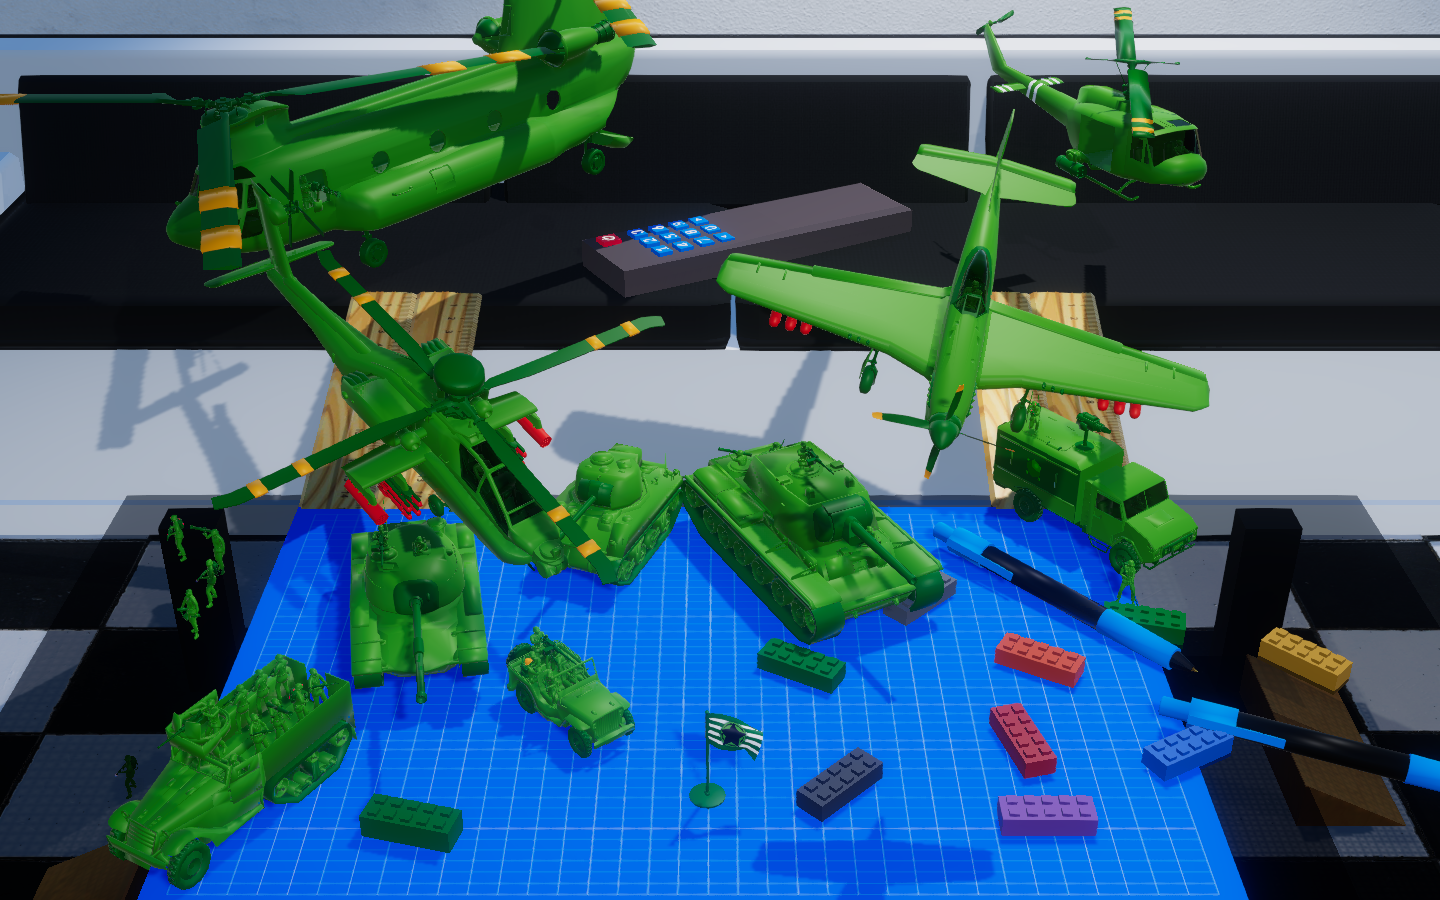 Devlog #14 AH-64 Apache, P-51 Mustang, and All Vehicles Are Now Driveable!